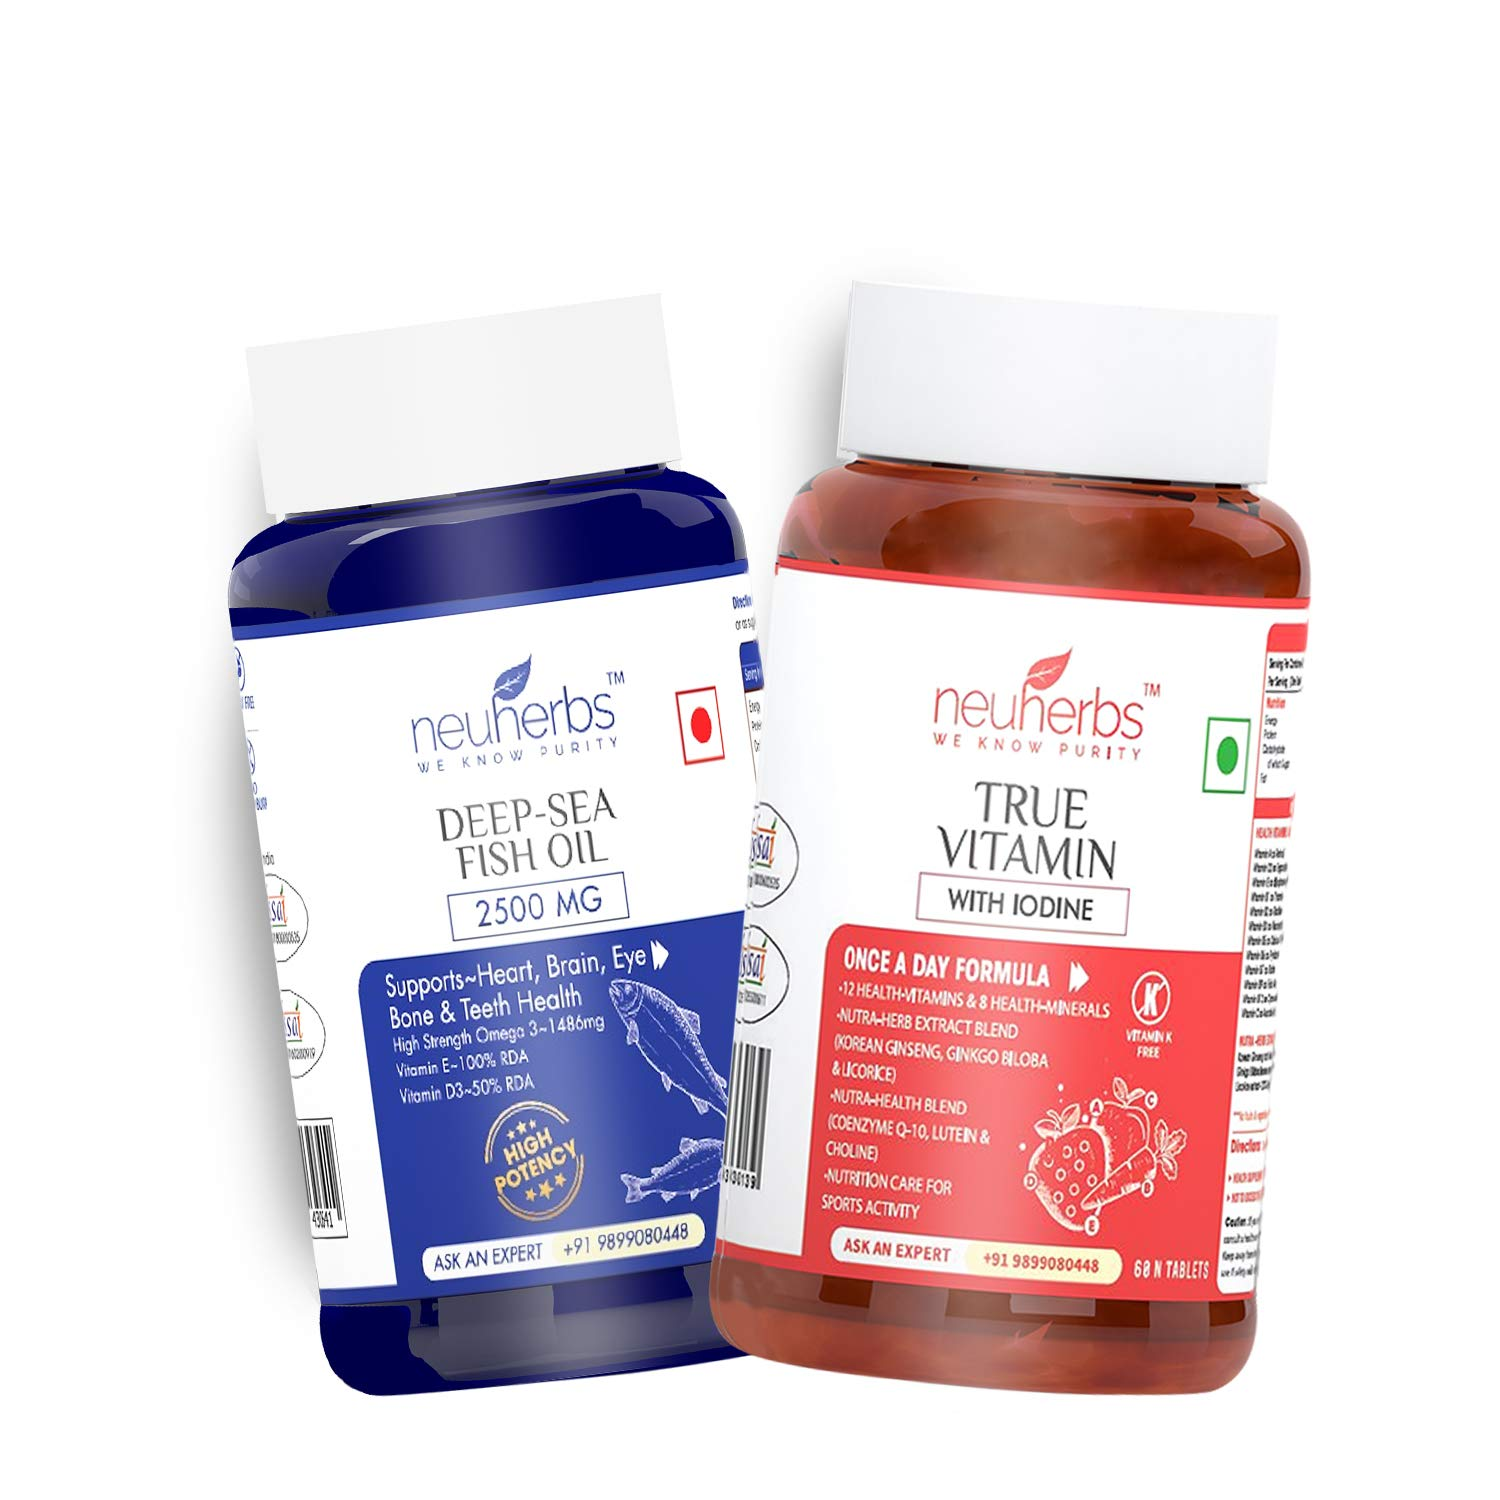 Neuherbs Daily Vitamin Supplement Combo- Multivitamin With Zinc, Iodine And Vitamin C + Omega-3 Fish Oil Capsules (Deep Sea Fish Oil 2500 Mg) : 60 Units Each For Men And Women :